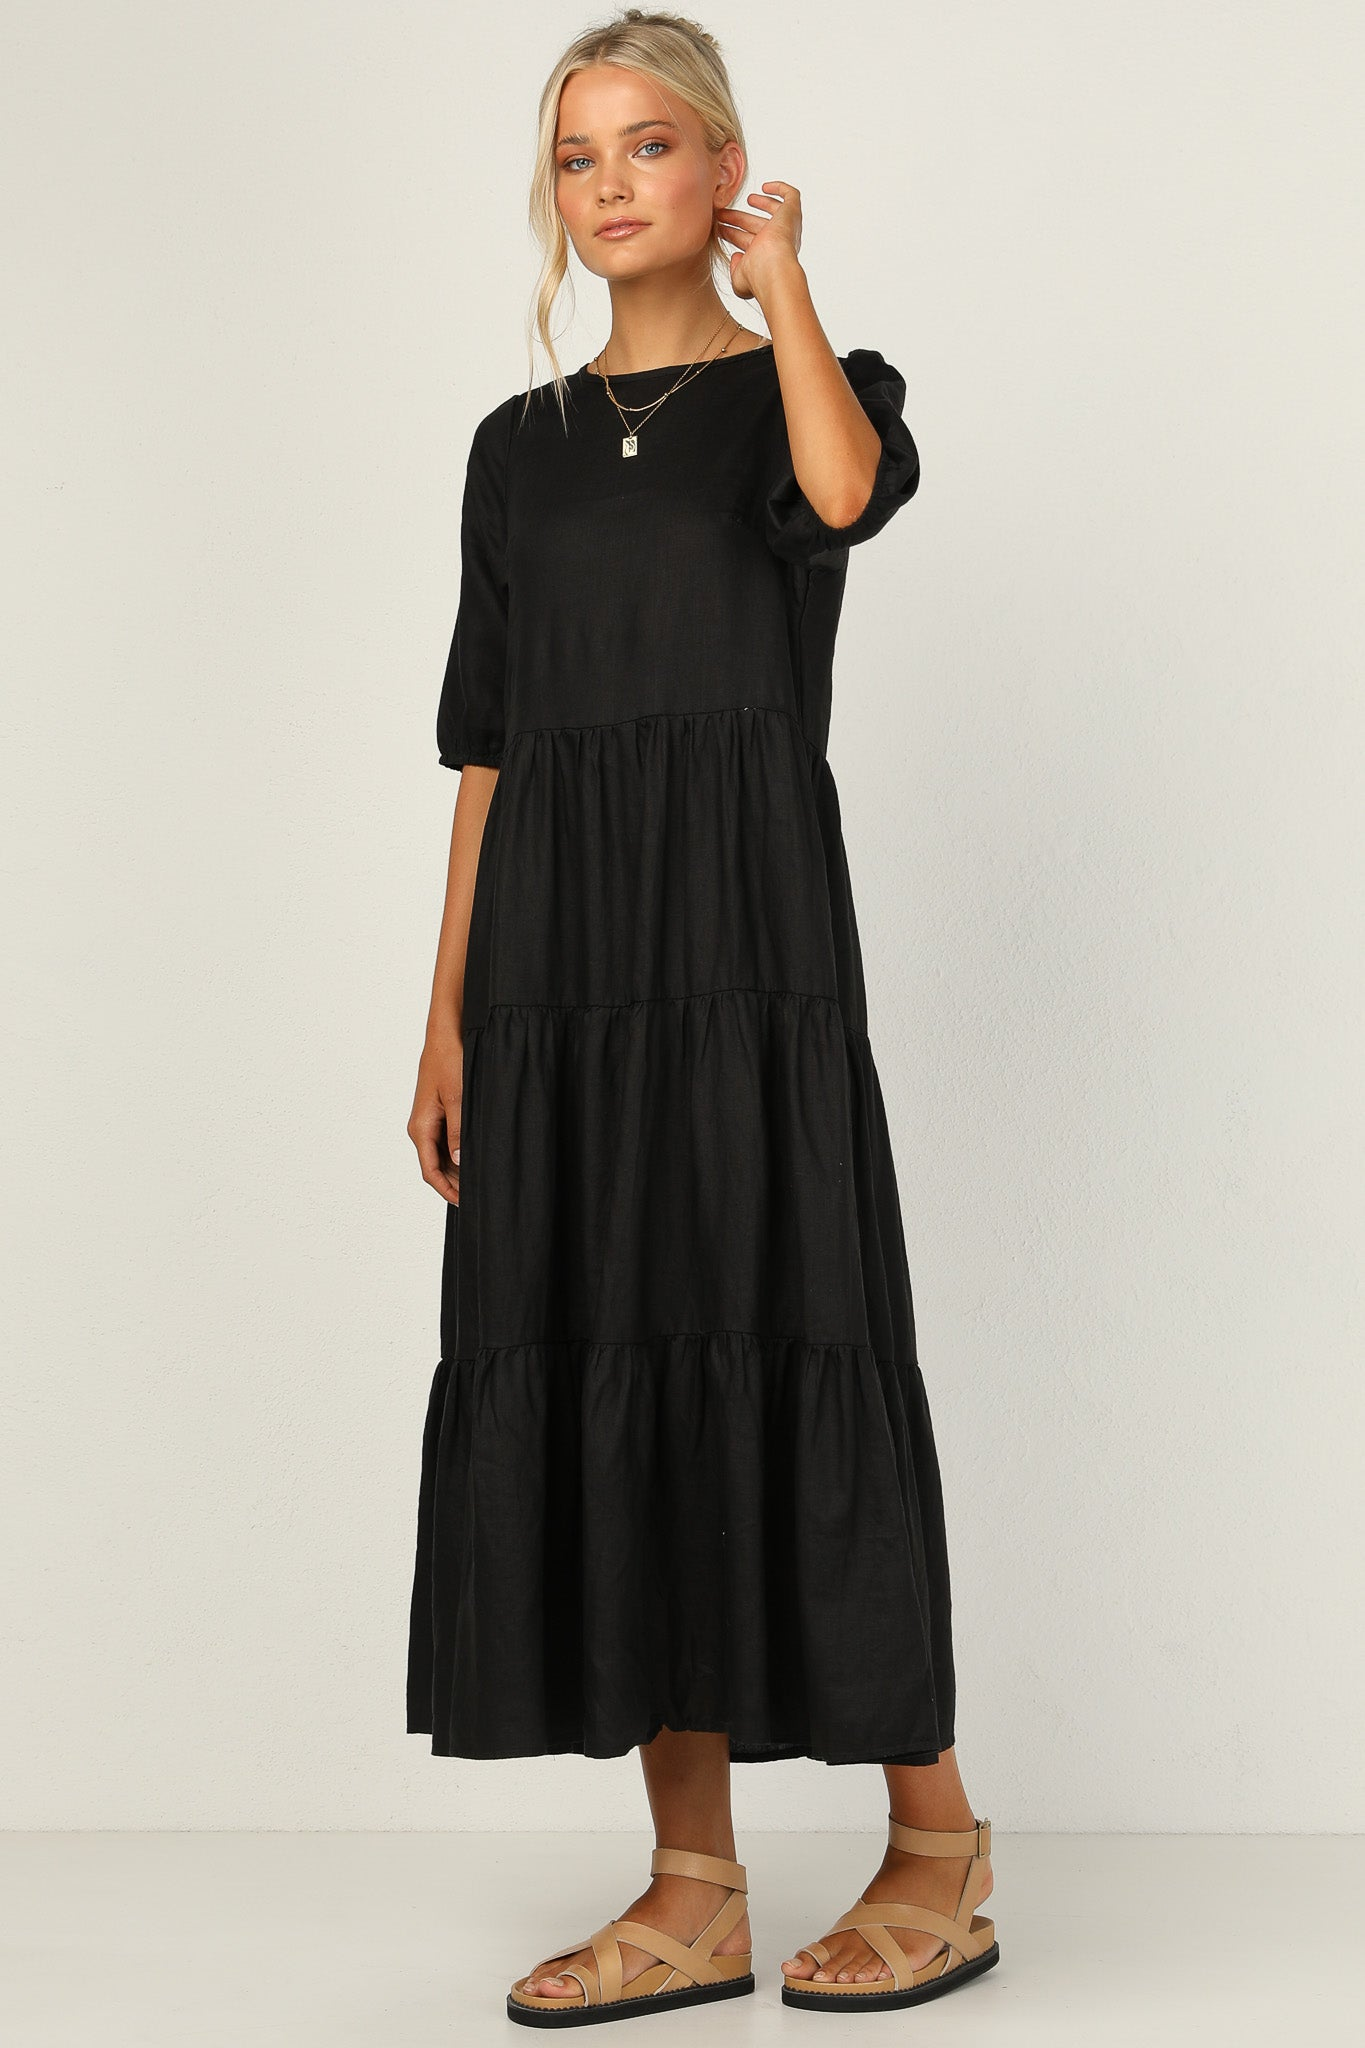 Autumn Dress (Black)